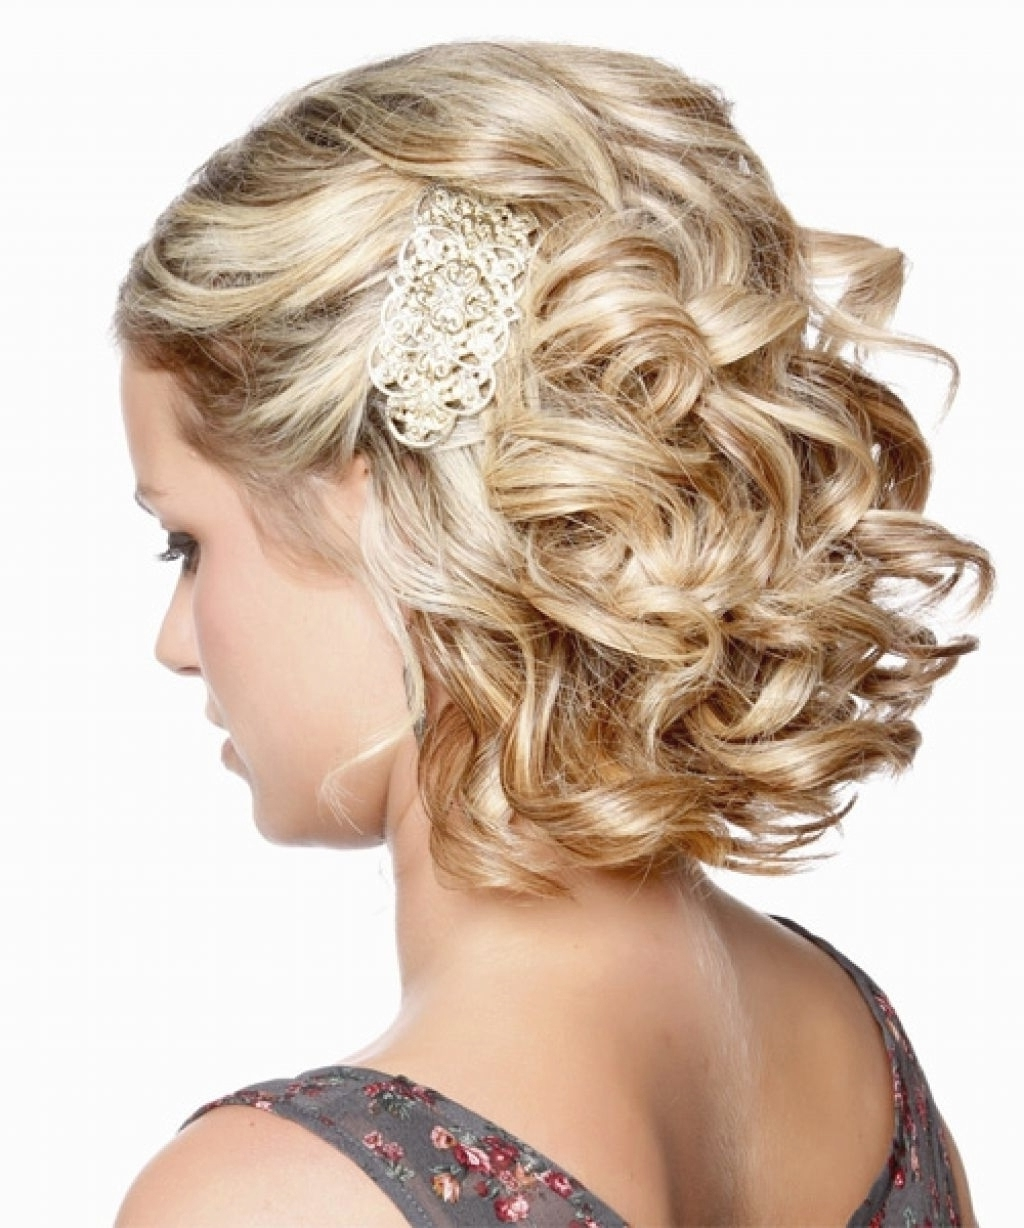 Unforgettable Weddingir Medium Length Bridalirstyles Ideas Updos For Throughout Well Known Wedding Hairstyles For Medium Length Curly Hair (View 13 of 15)